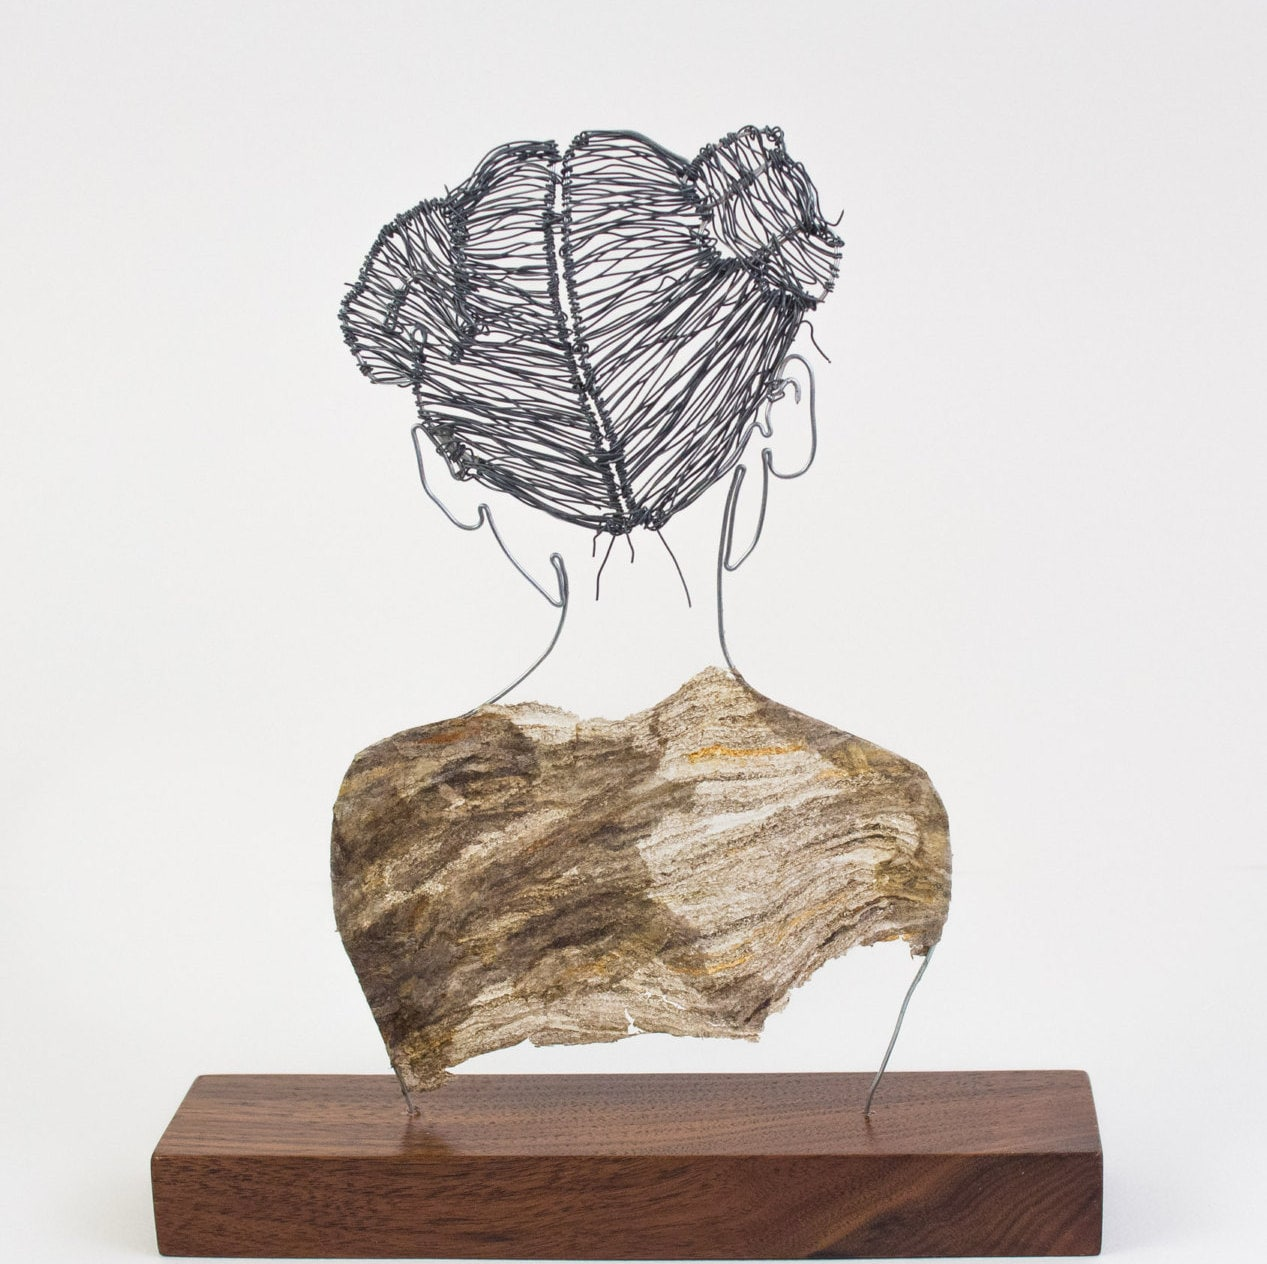 Wire woman figure sculpture with hair buns and paper wasp